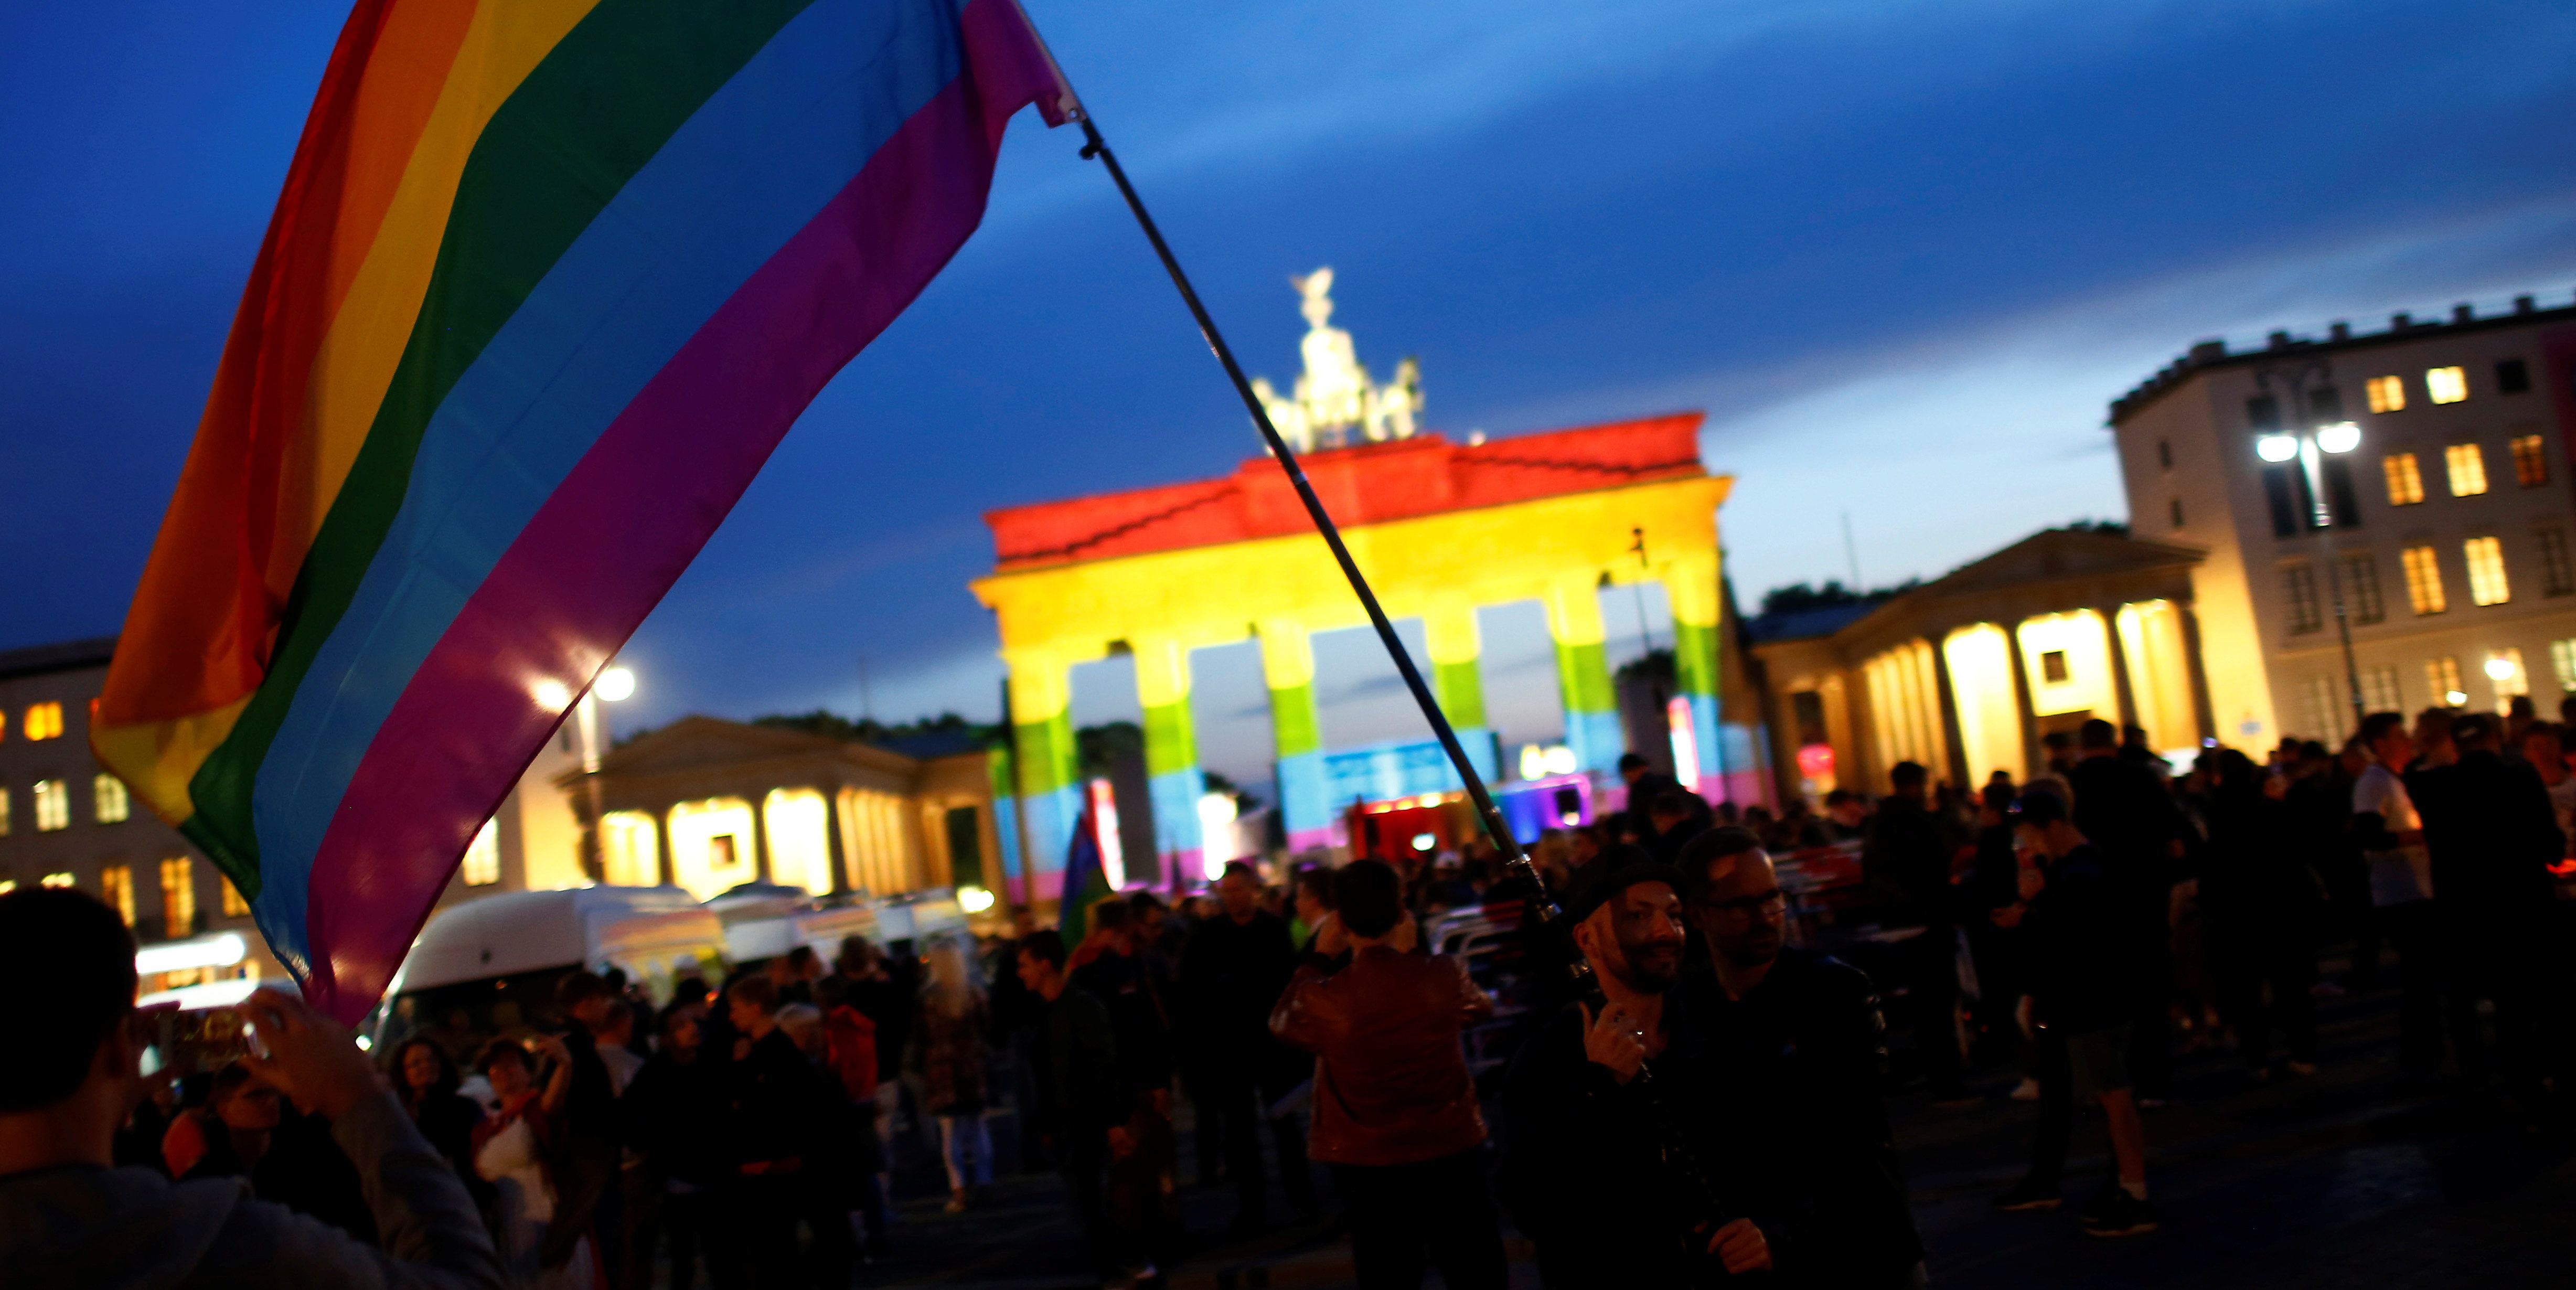 German residents have expressed broad support for same-sex marriage for some time.